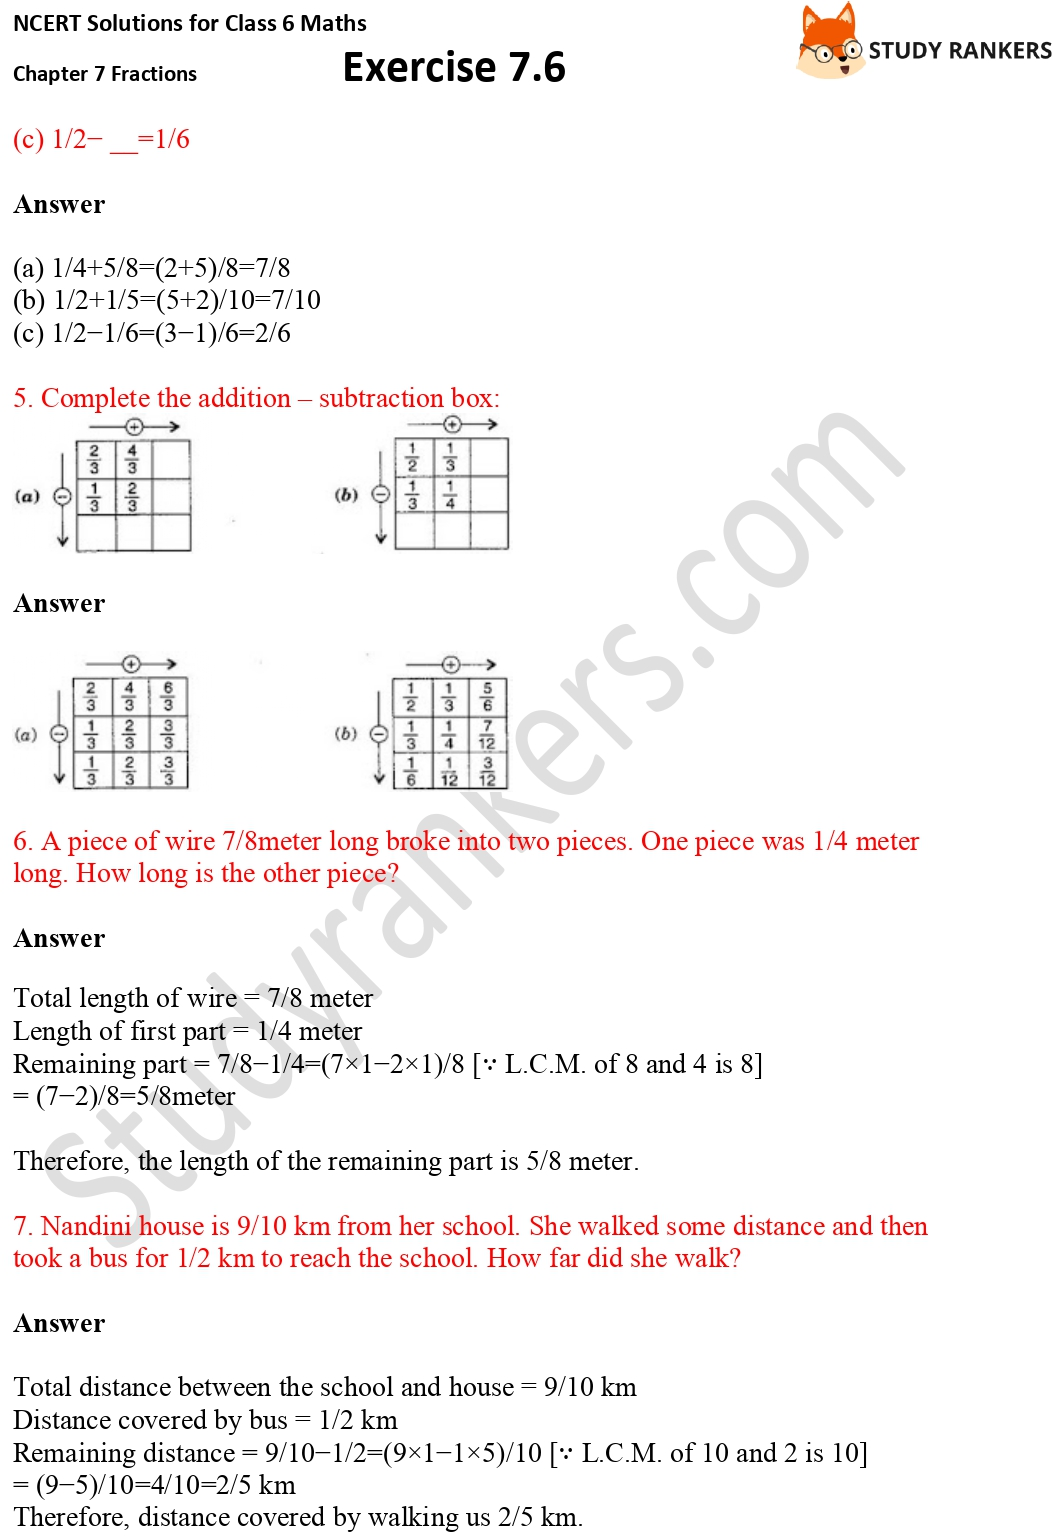 NCERT Solutions for Class 6 Maths Chapter 7 Fractions Exercise 7.6 Part 3